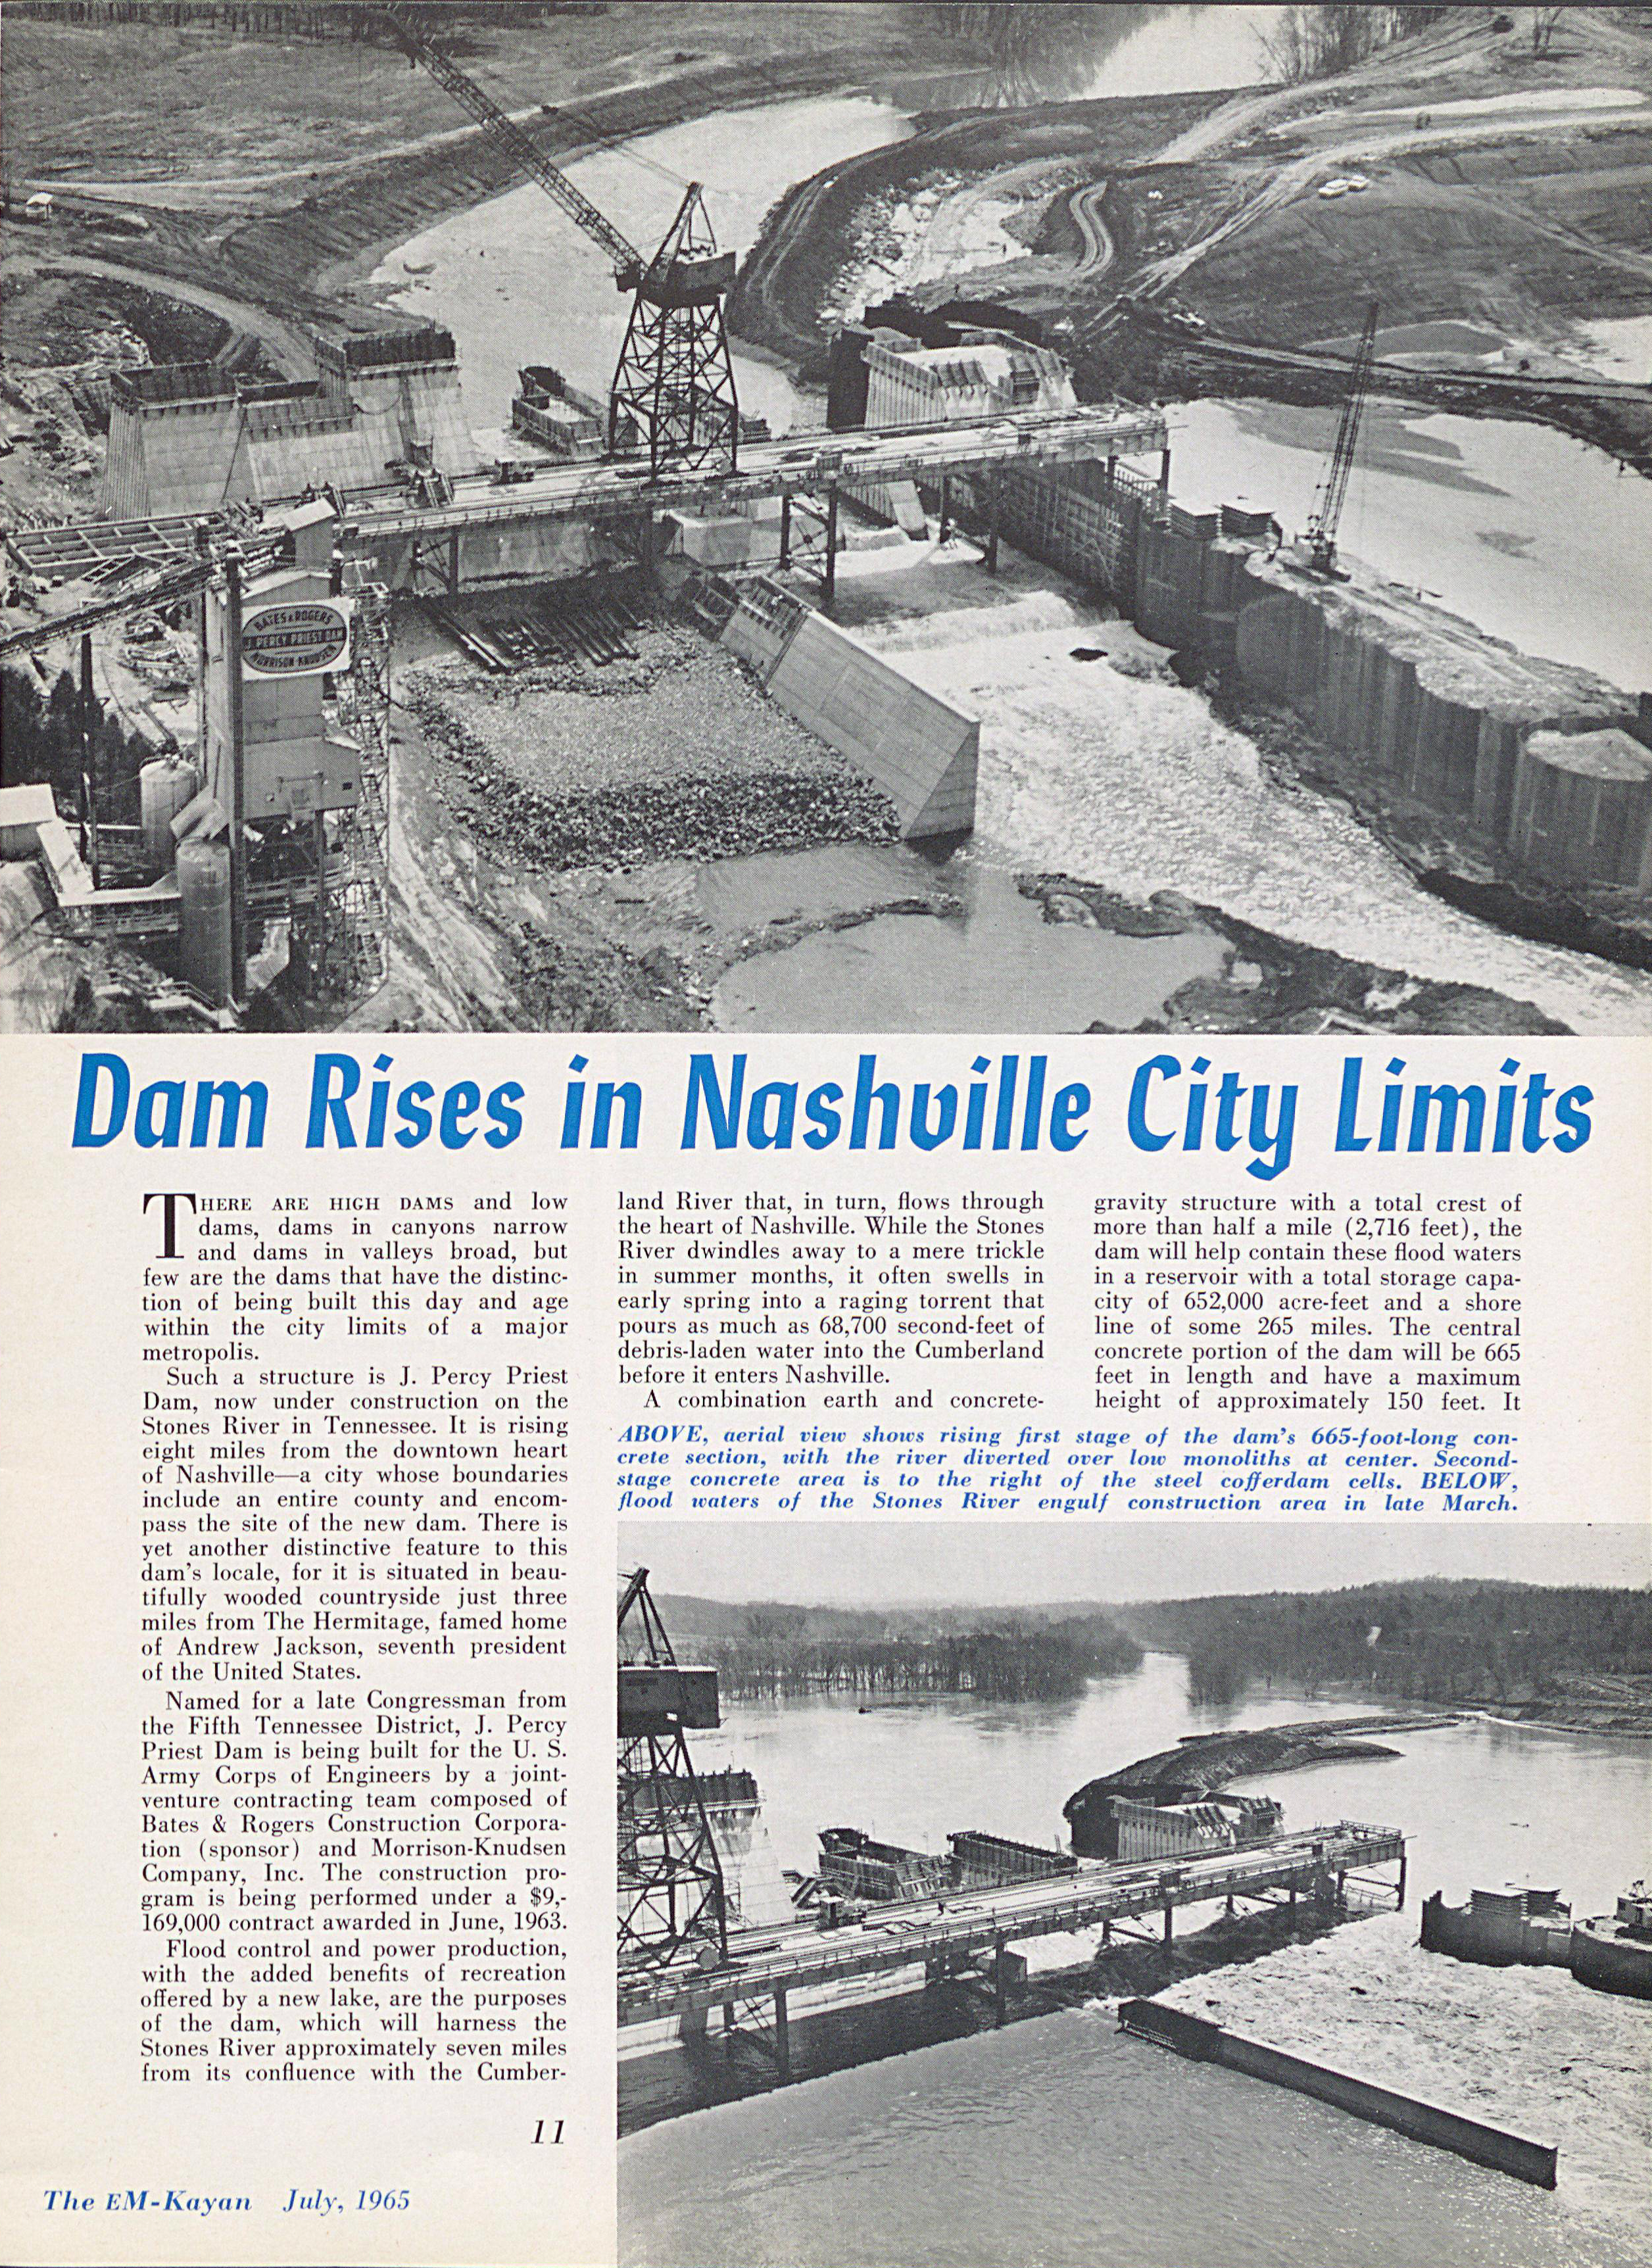 Dam rises in Nashville City Limits Article Page 1